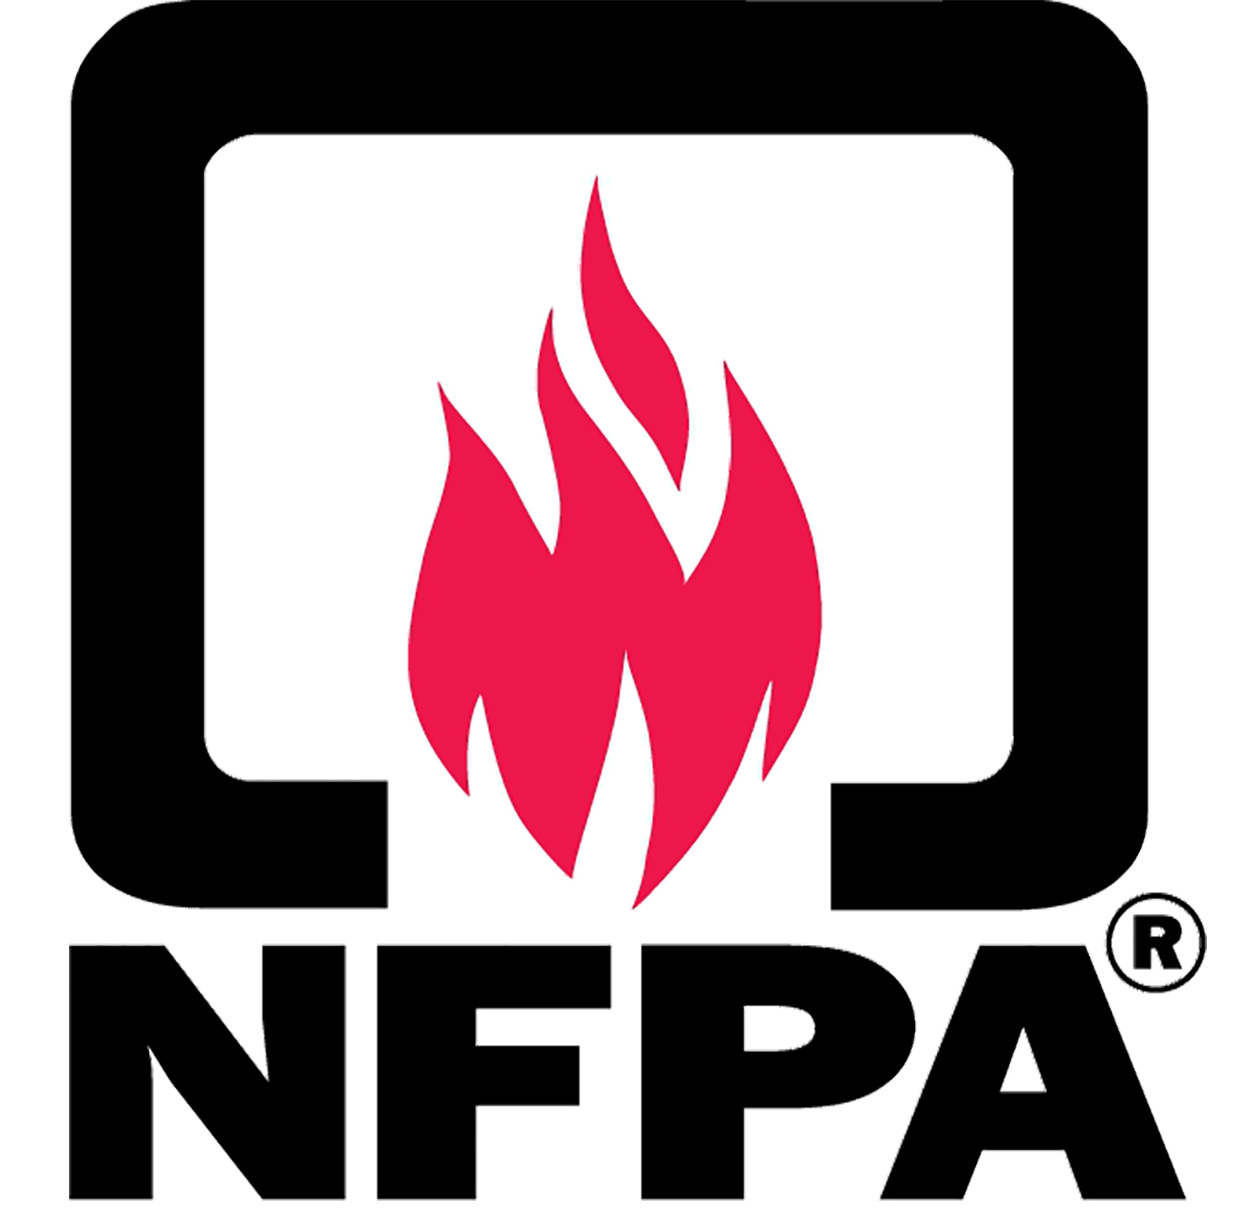 NFPA Releases Free, Self-Paced Online Training for Fire Service Drone Administrators and Operators